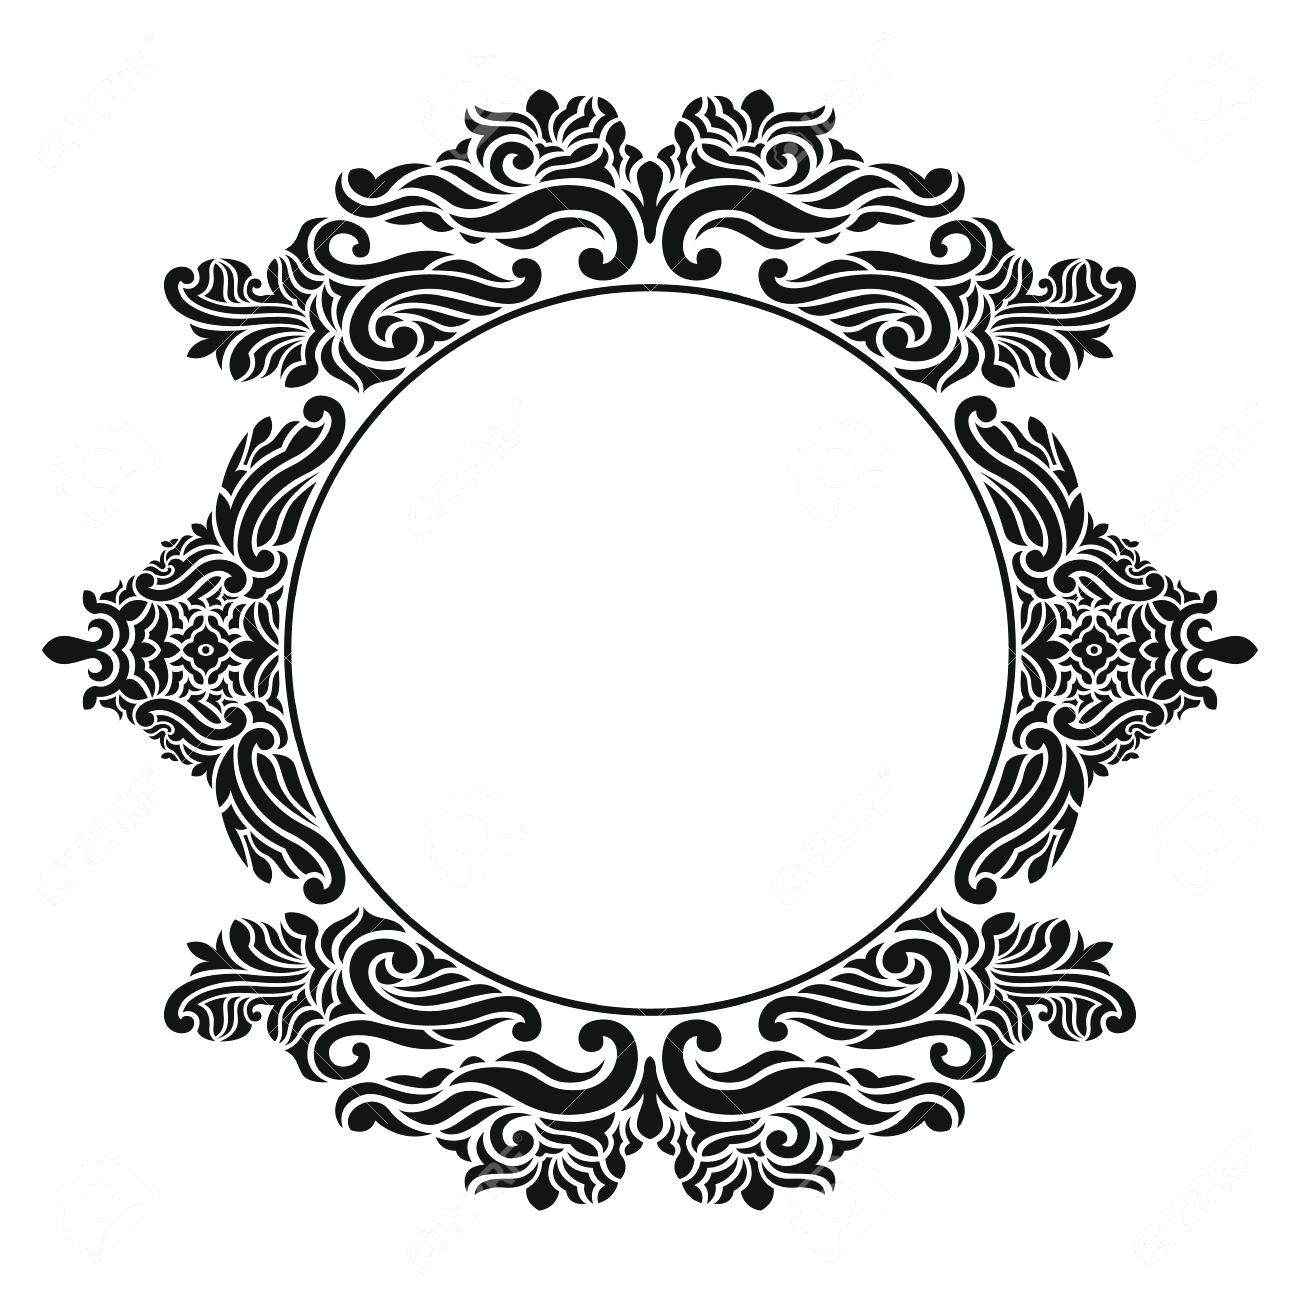 Vintage Frame Silhouette at GetDrawings.com | Free for personal use ...